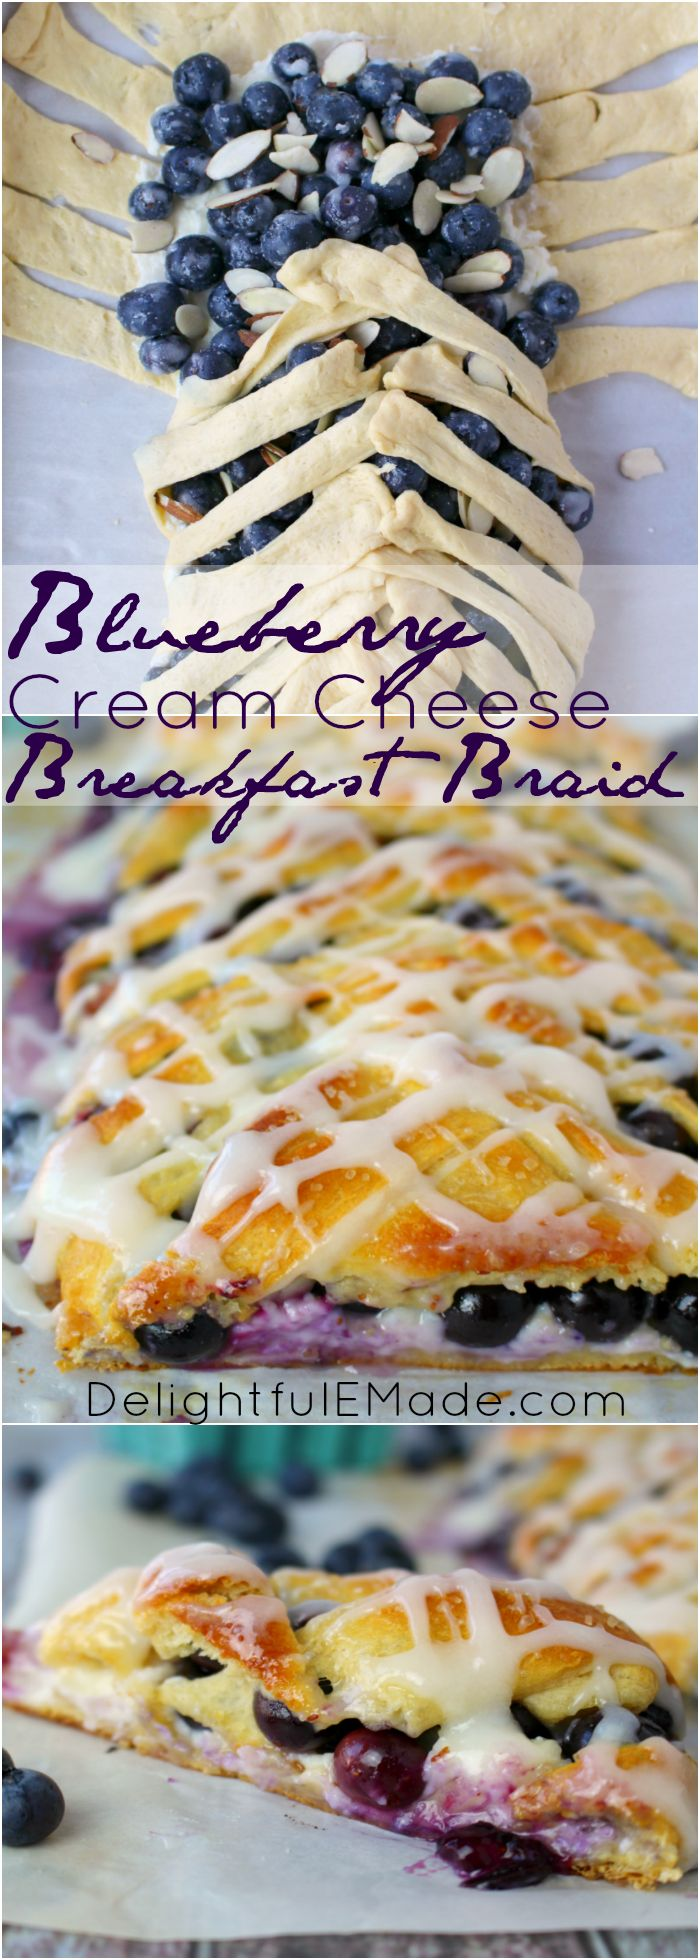 charm bracelets for men Meet your new favorite breakfast pastry  This super simple Blueberry Cream Cheese Breakfast Braid is made from store bought crescent sheets  along with fresh blueberries  and almonds and a baked to perfection  The perfect pairing with your morning coffee